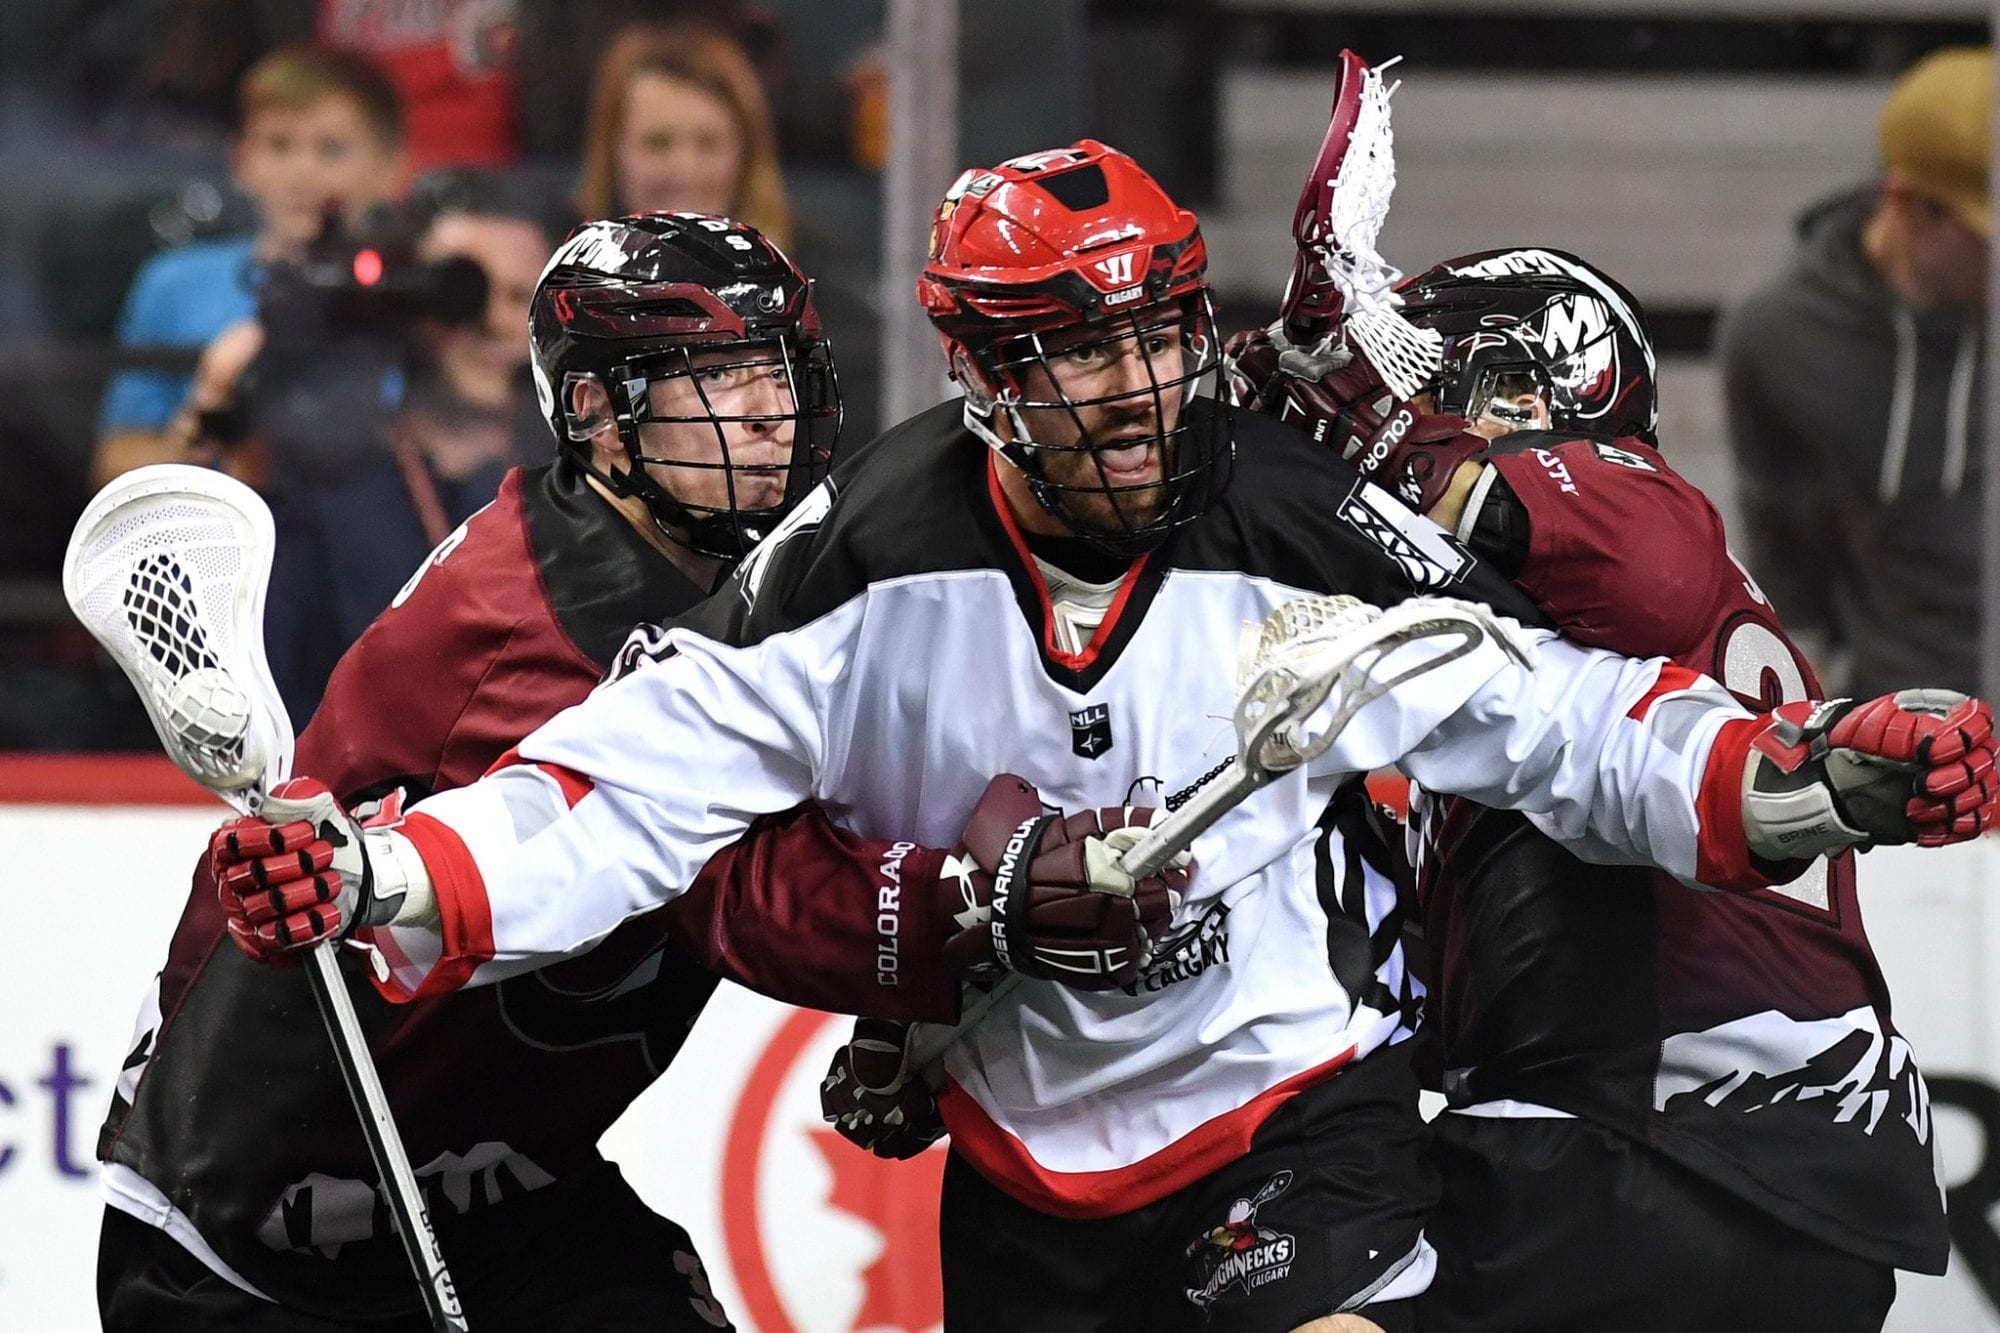 Calgary Roughnecks Colorado Mammoth NLL 2018 Week 4